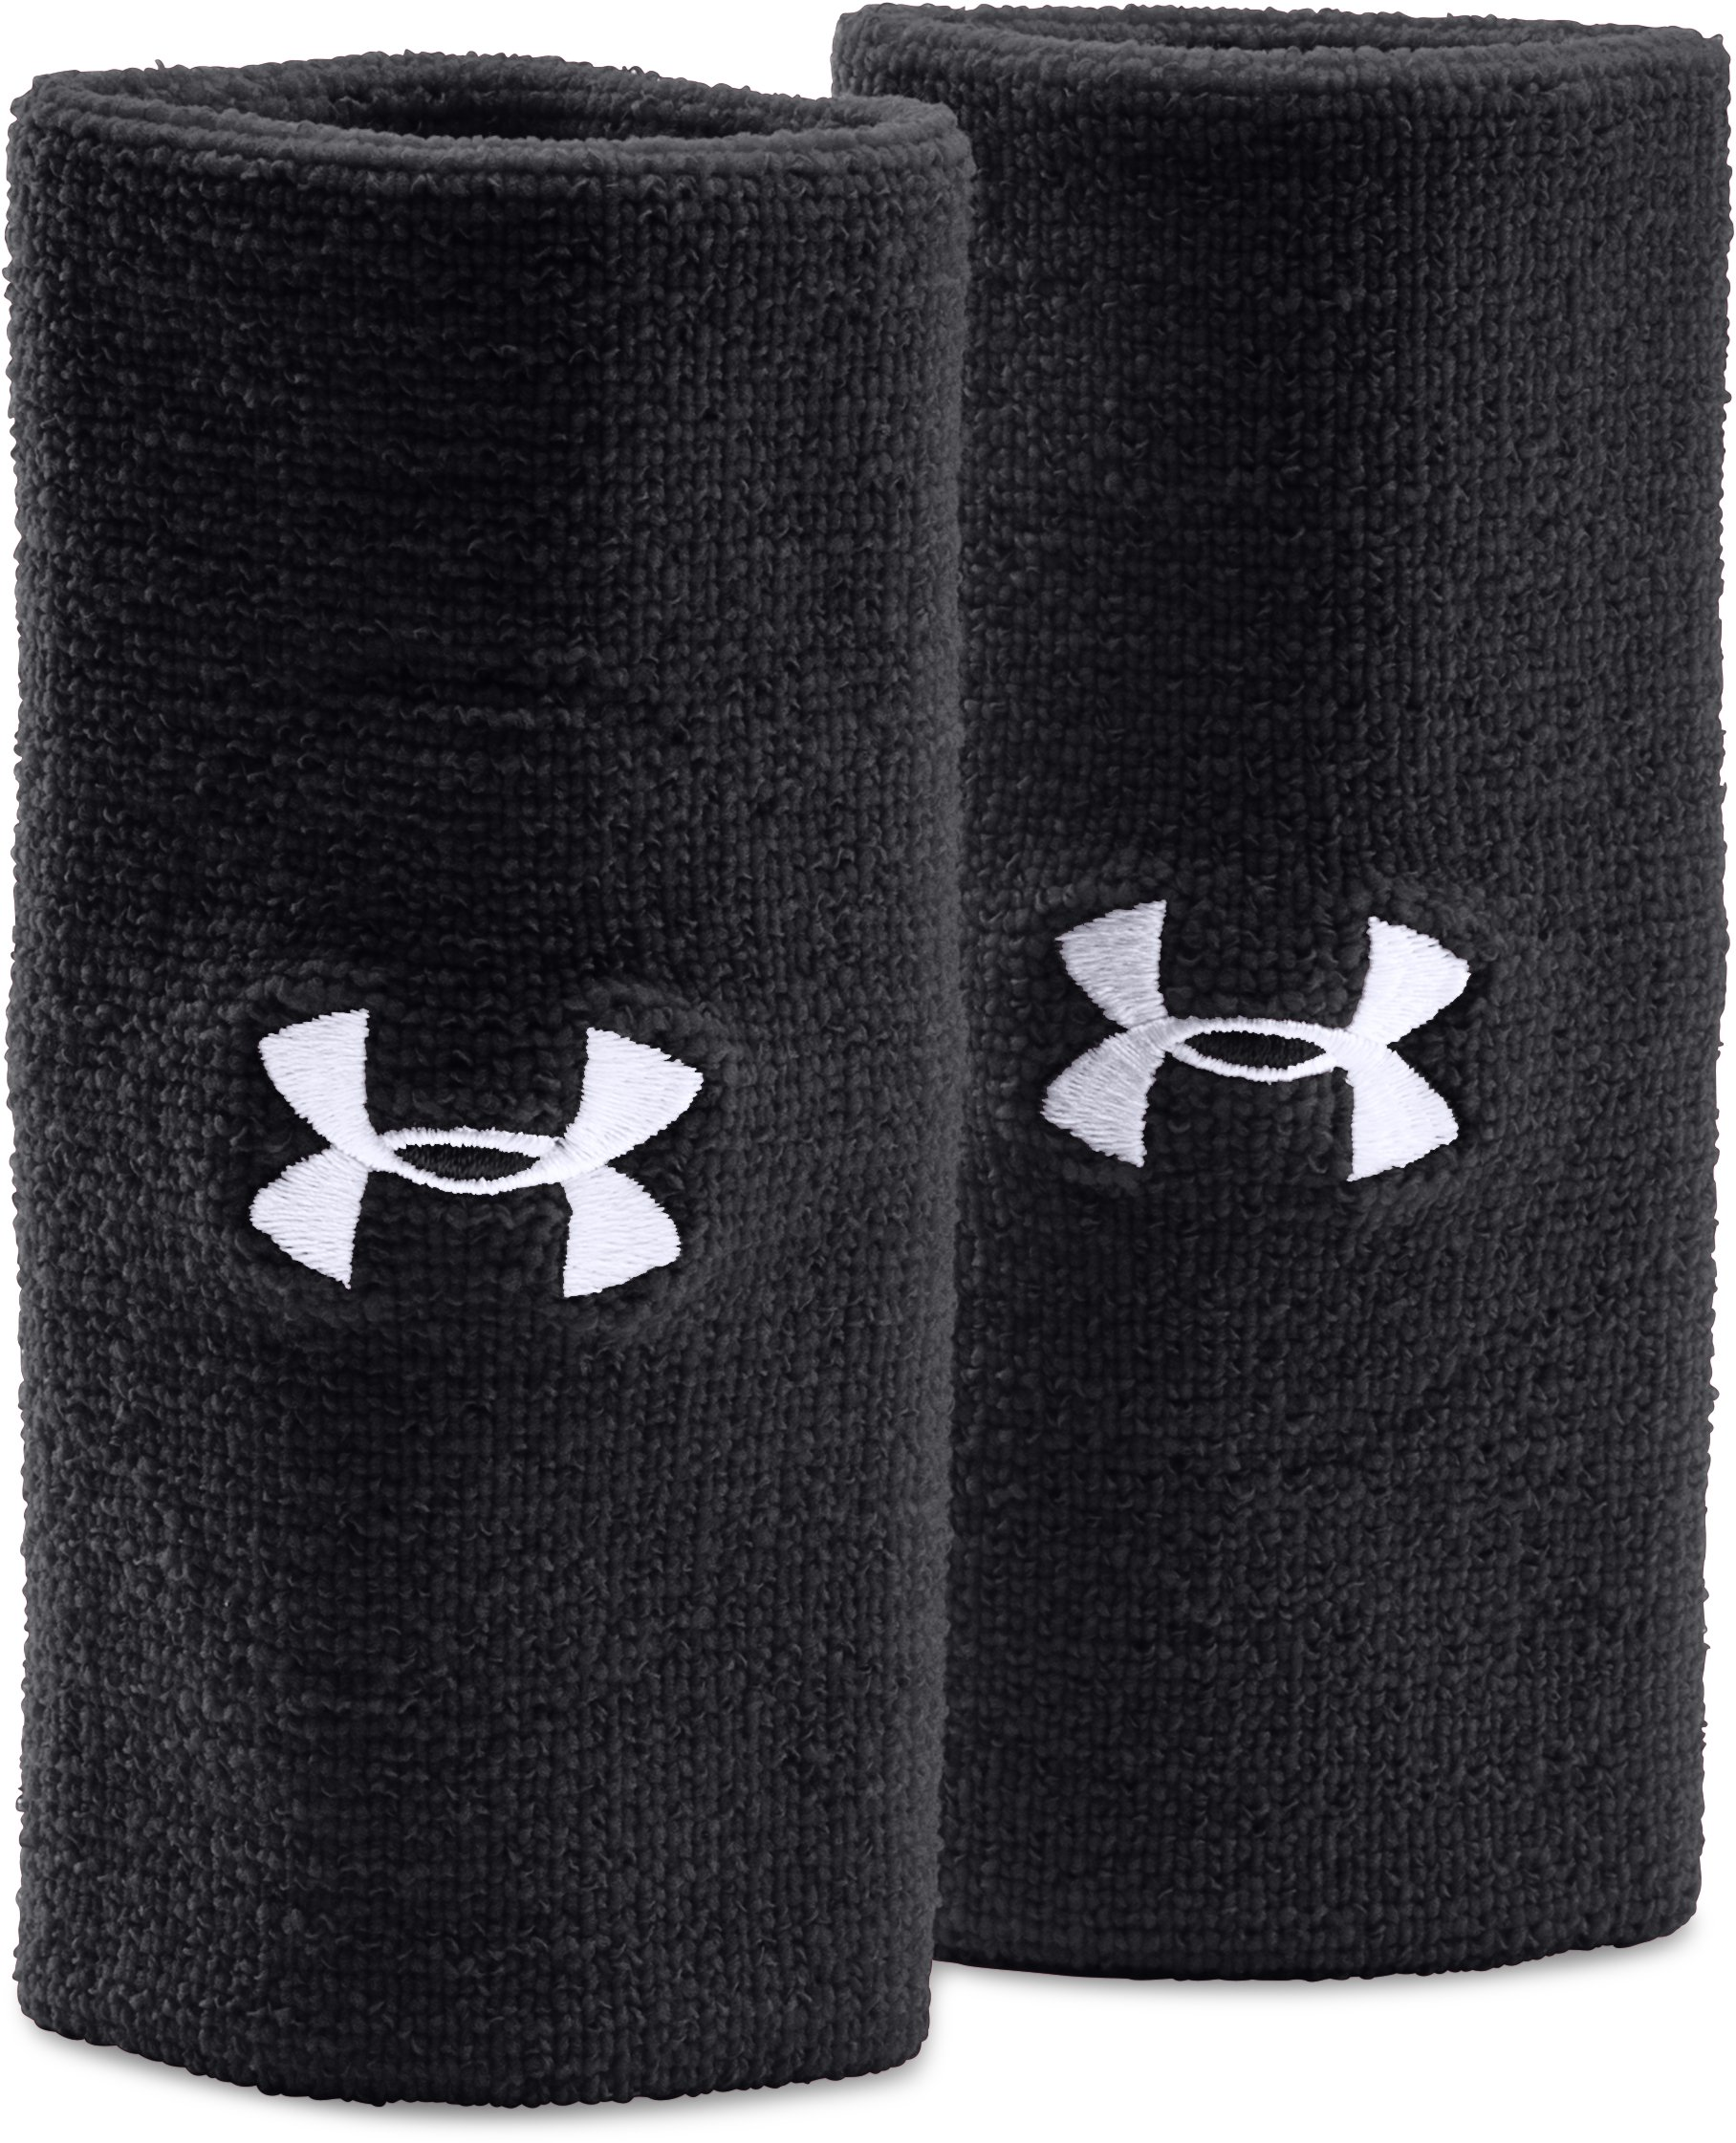 "emergency wristbands 6"" UA Performance Wristband 2-Pack good band...We love it!...Perfect Choice!"